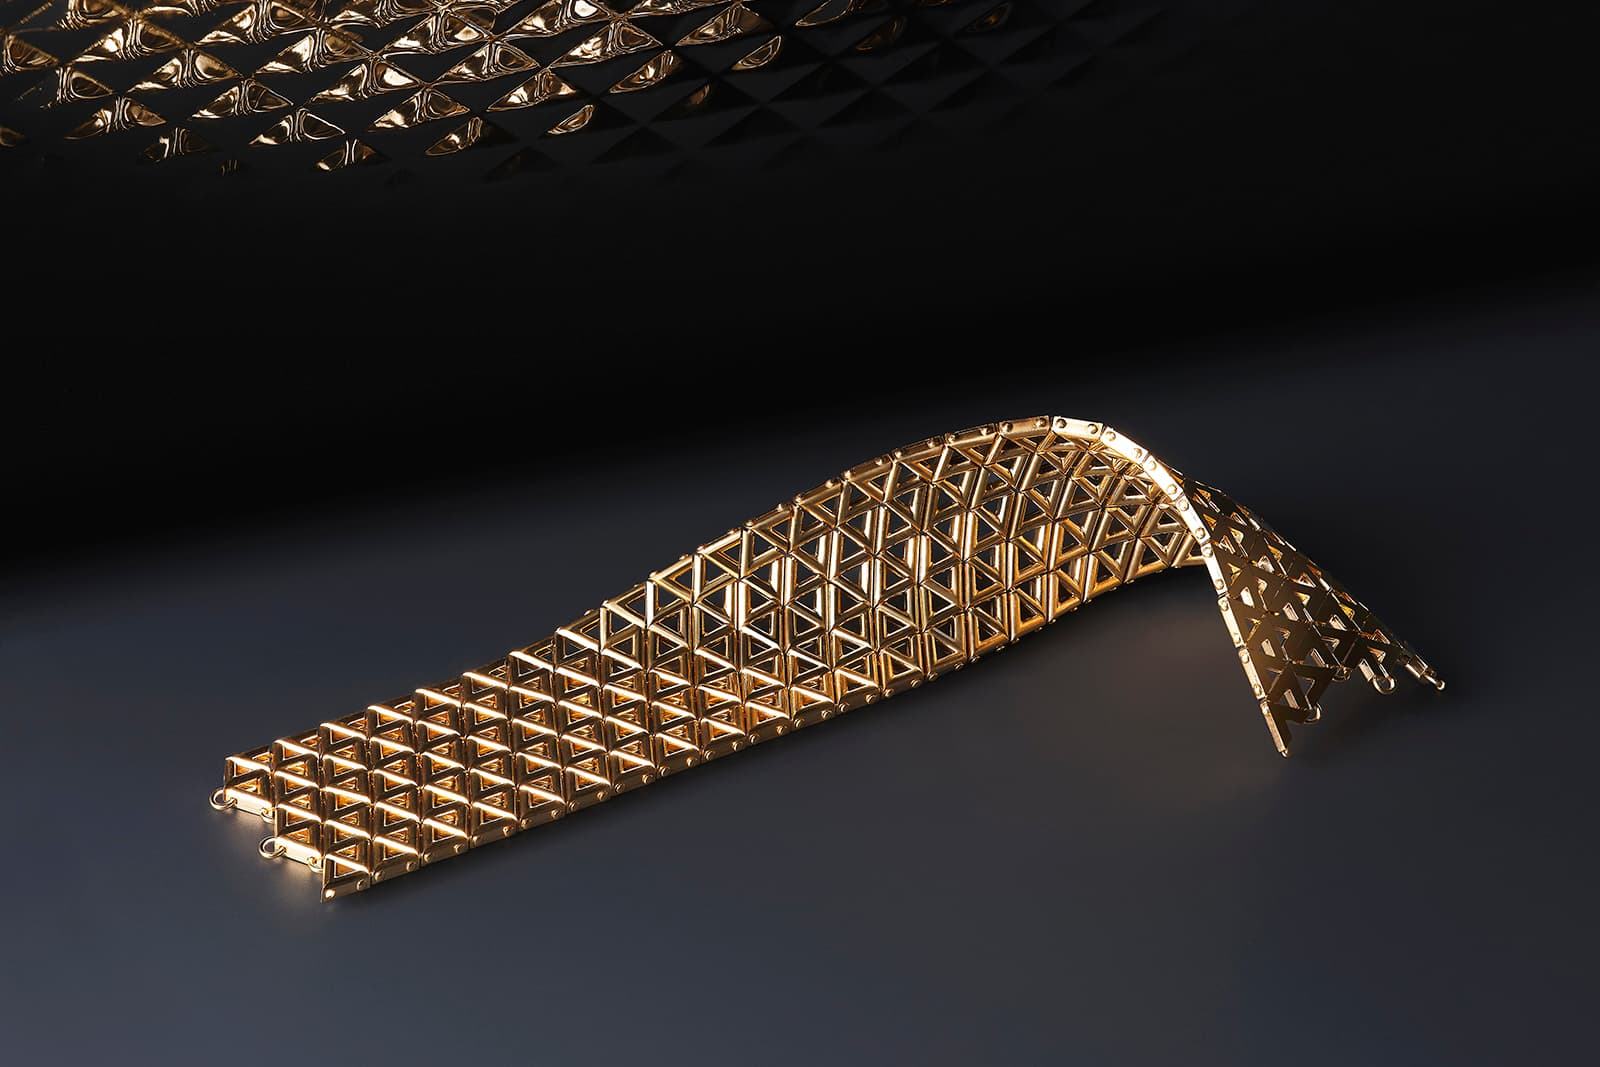 The mesh-like LV Volt bracelet is super sleek and supple